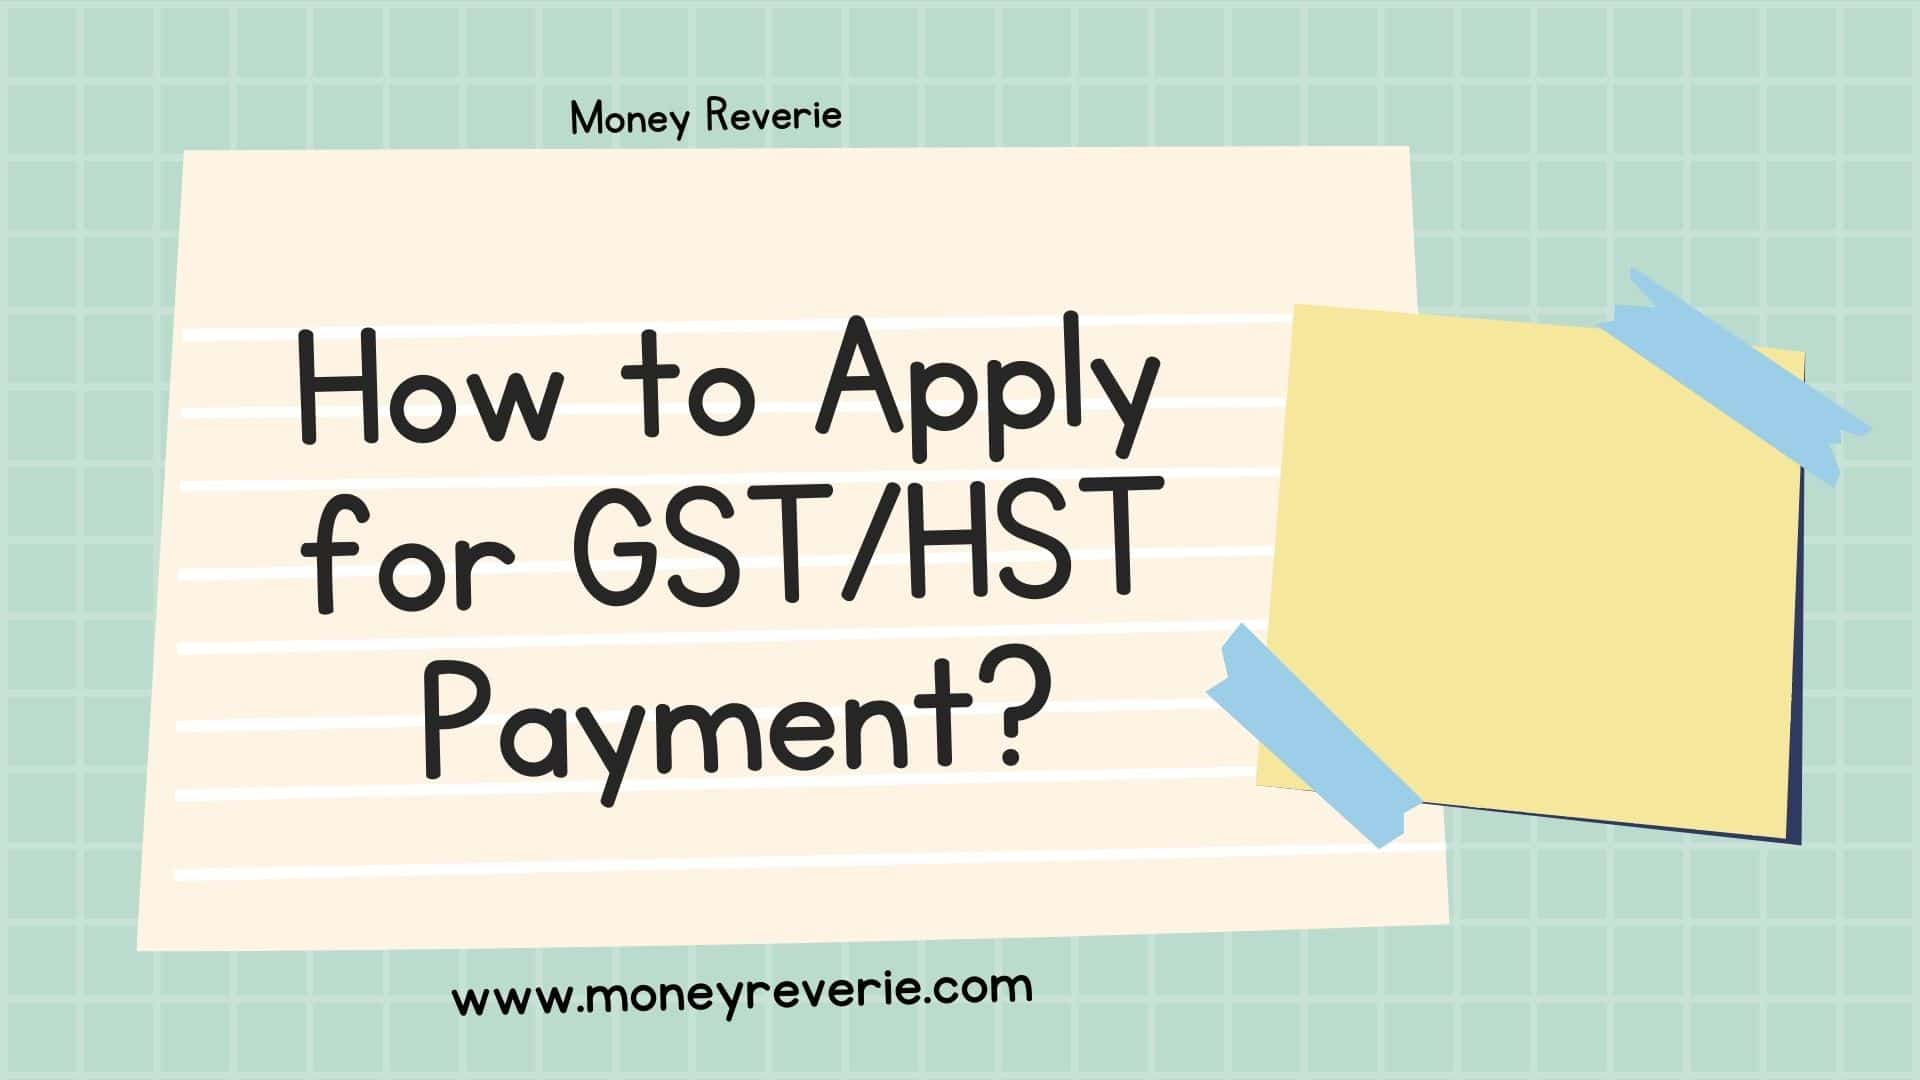 How to apply for gsthst